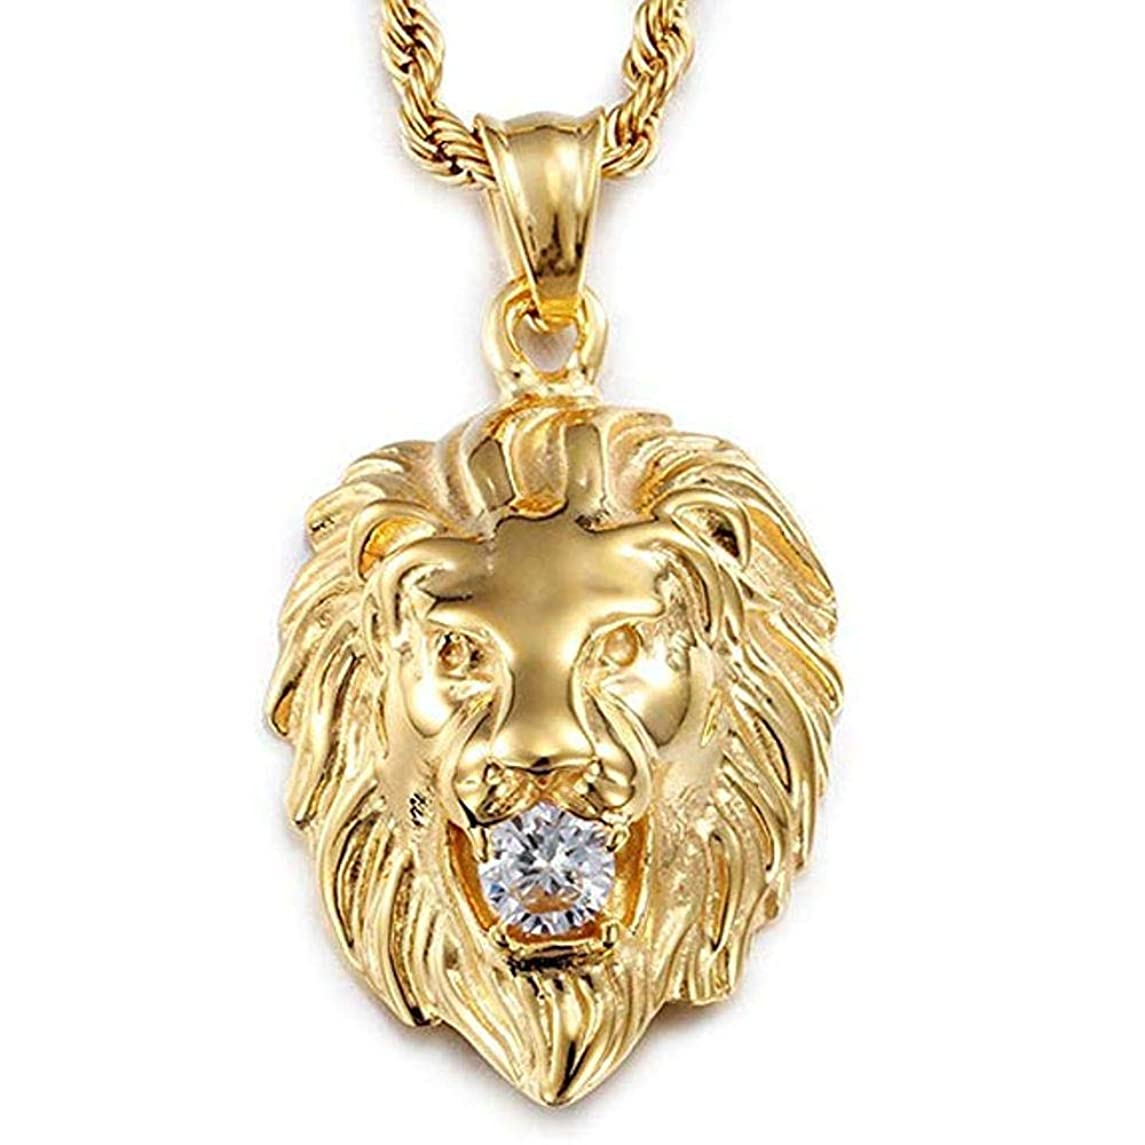 Stainless Steel Vintage Men's Gold Lion Pendant Necklace White Stone Rope Chain 27.5 inch Chain